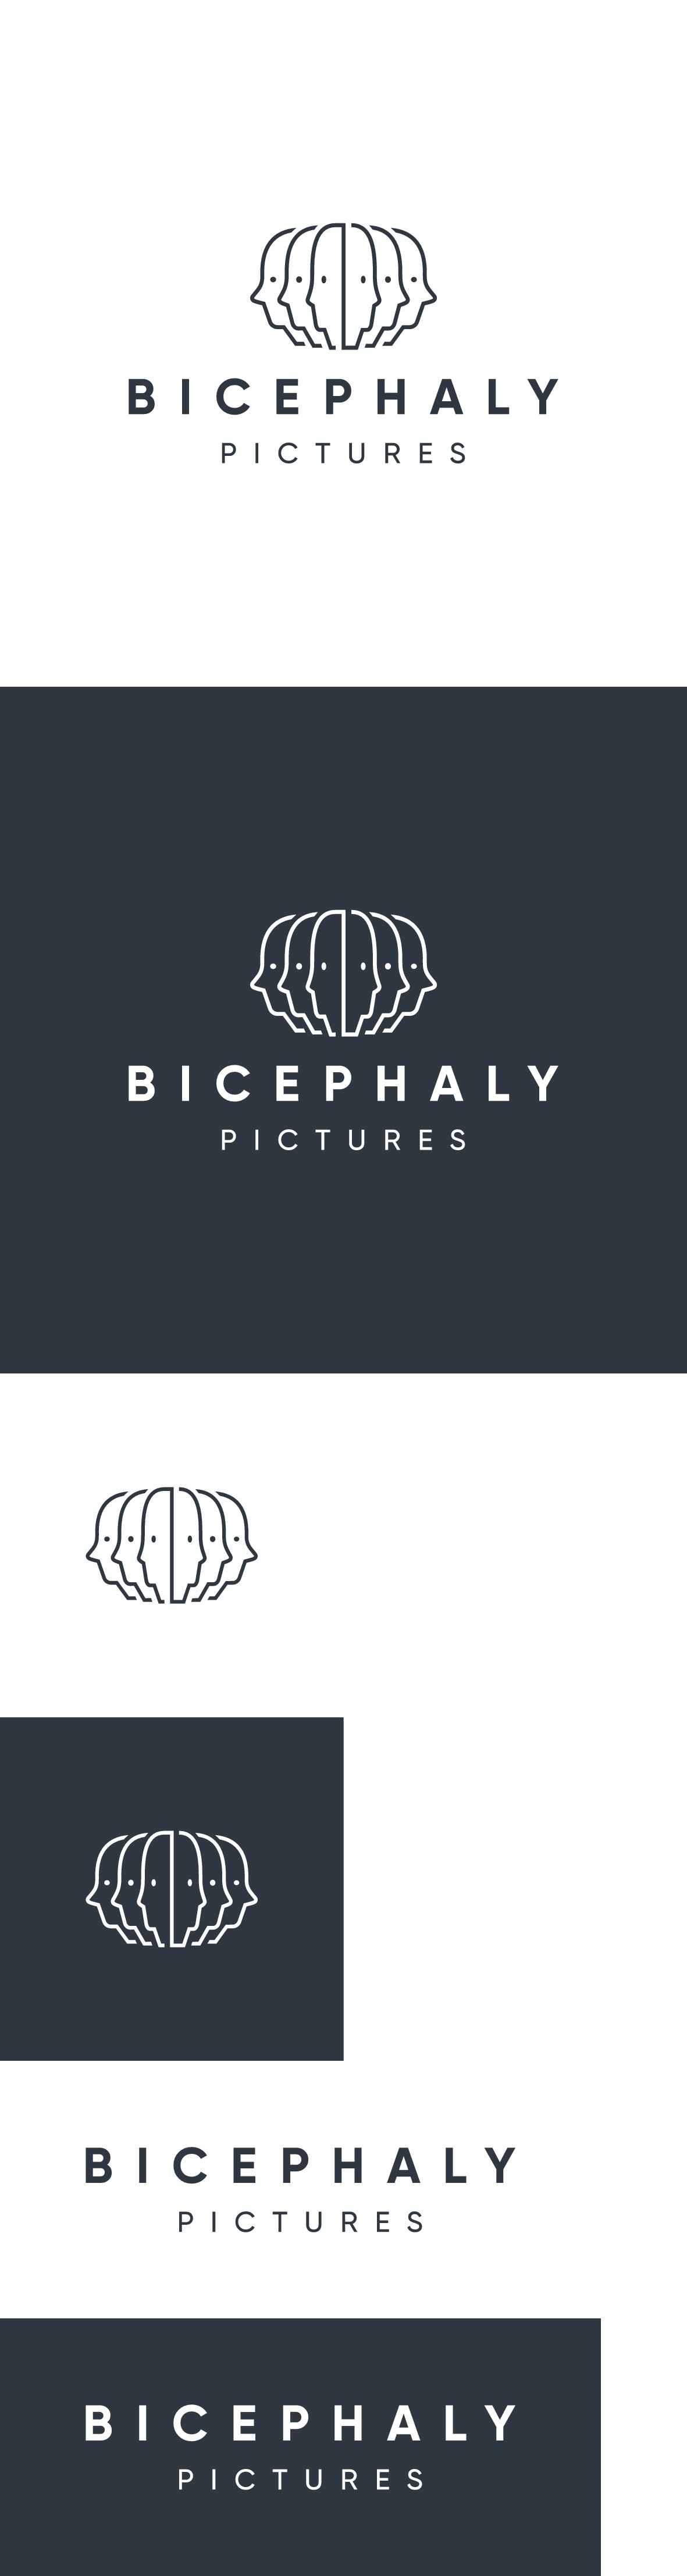 Design a film production company logo for Bicephaly Pictures